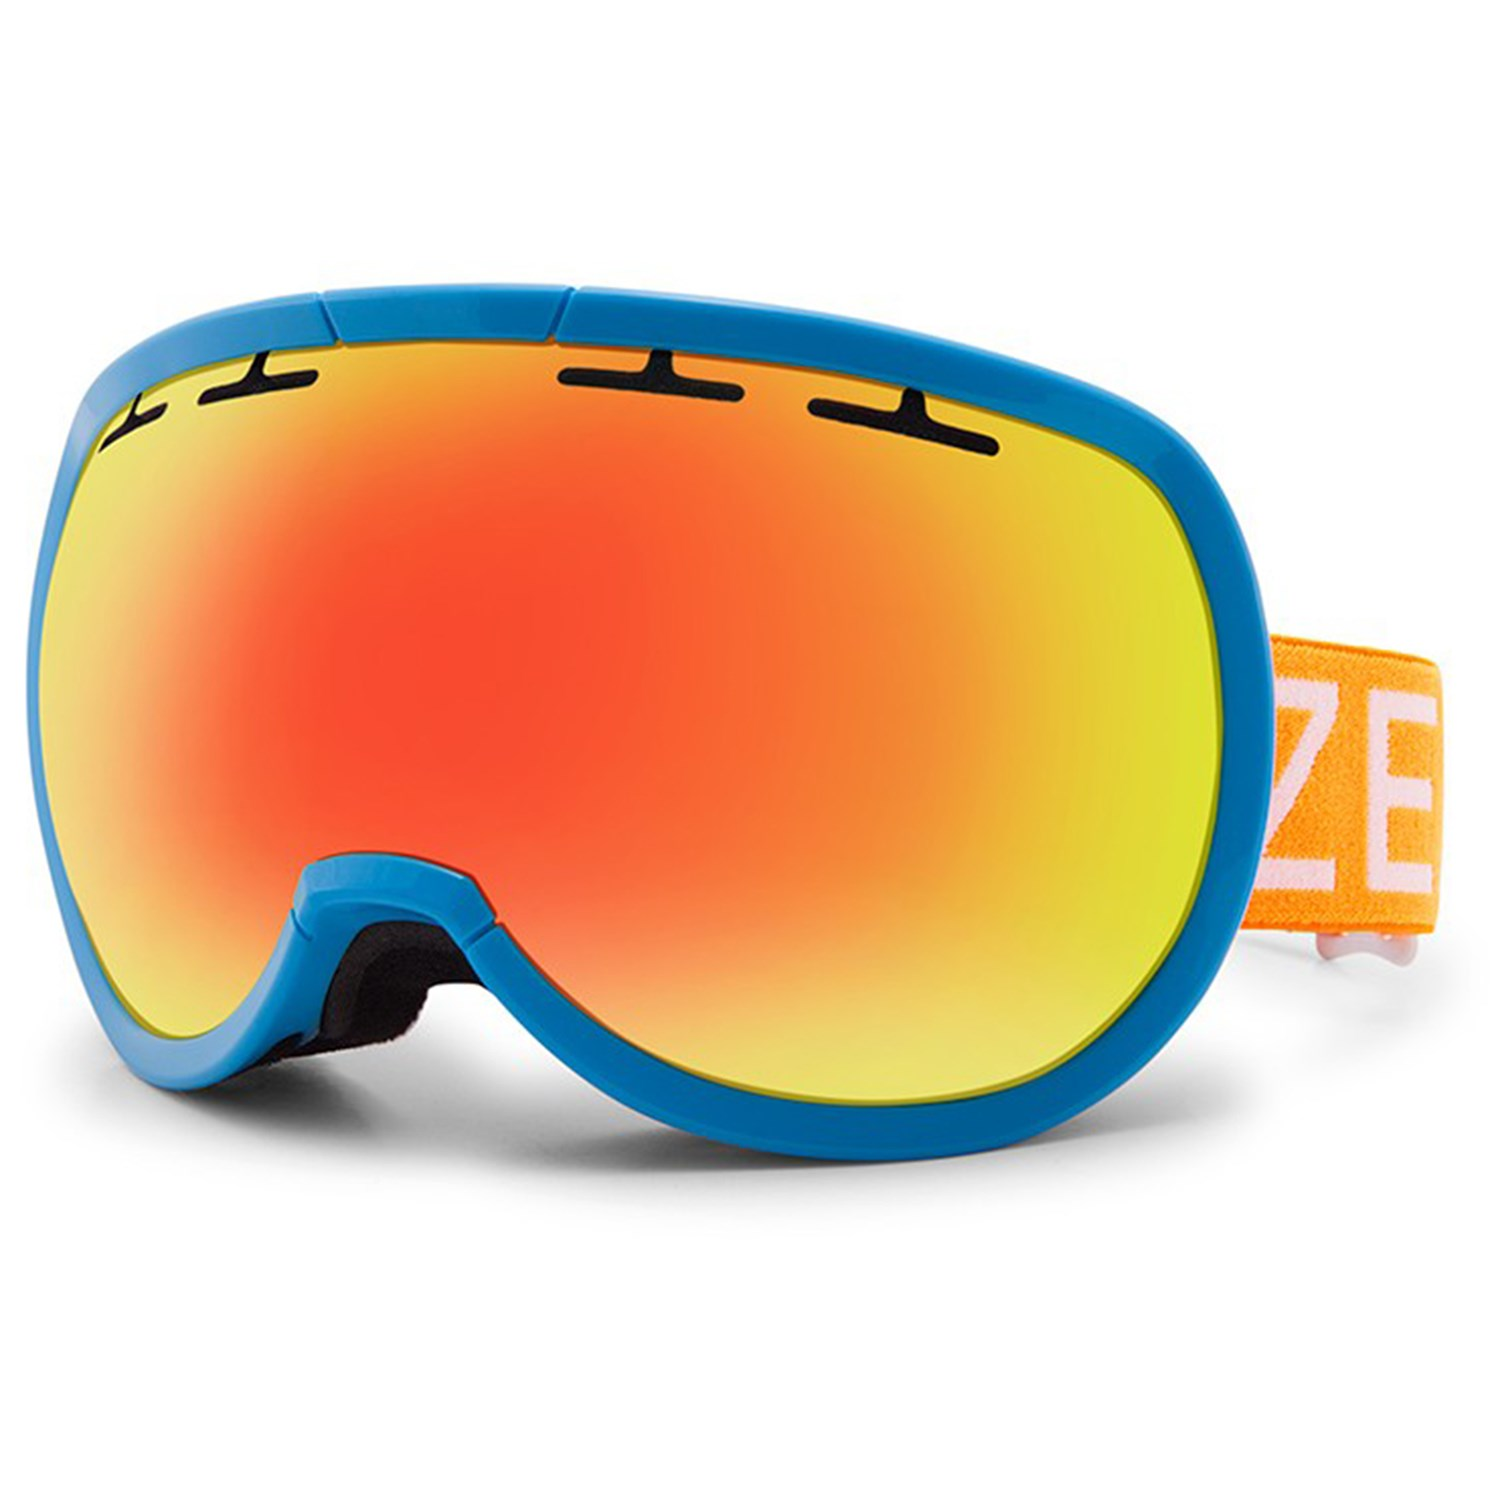 a82c14eb8c Zeal Level Goggles